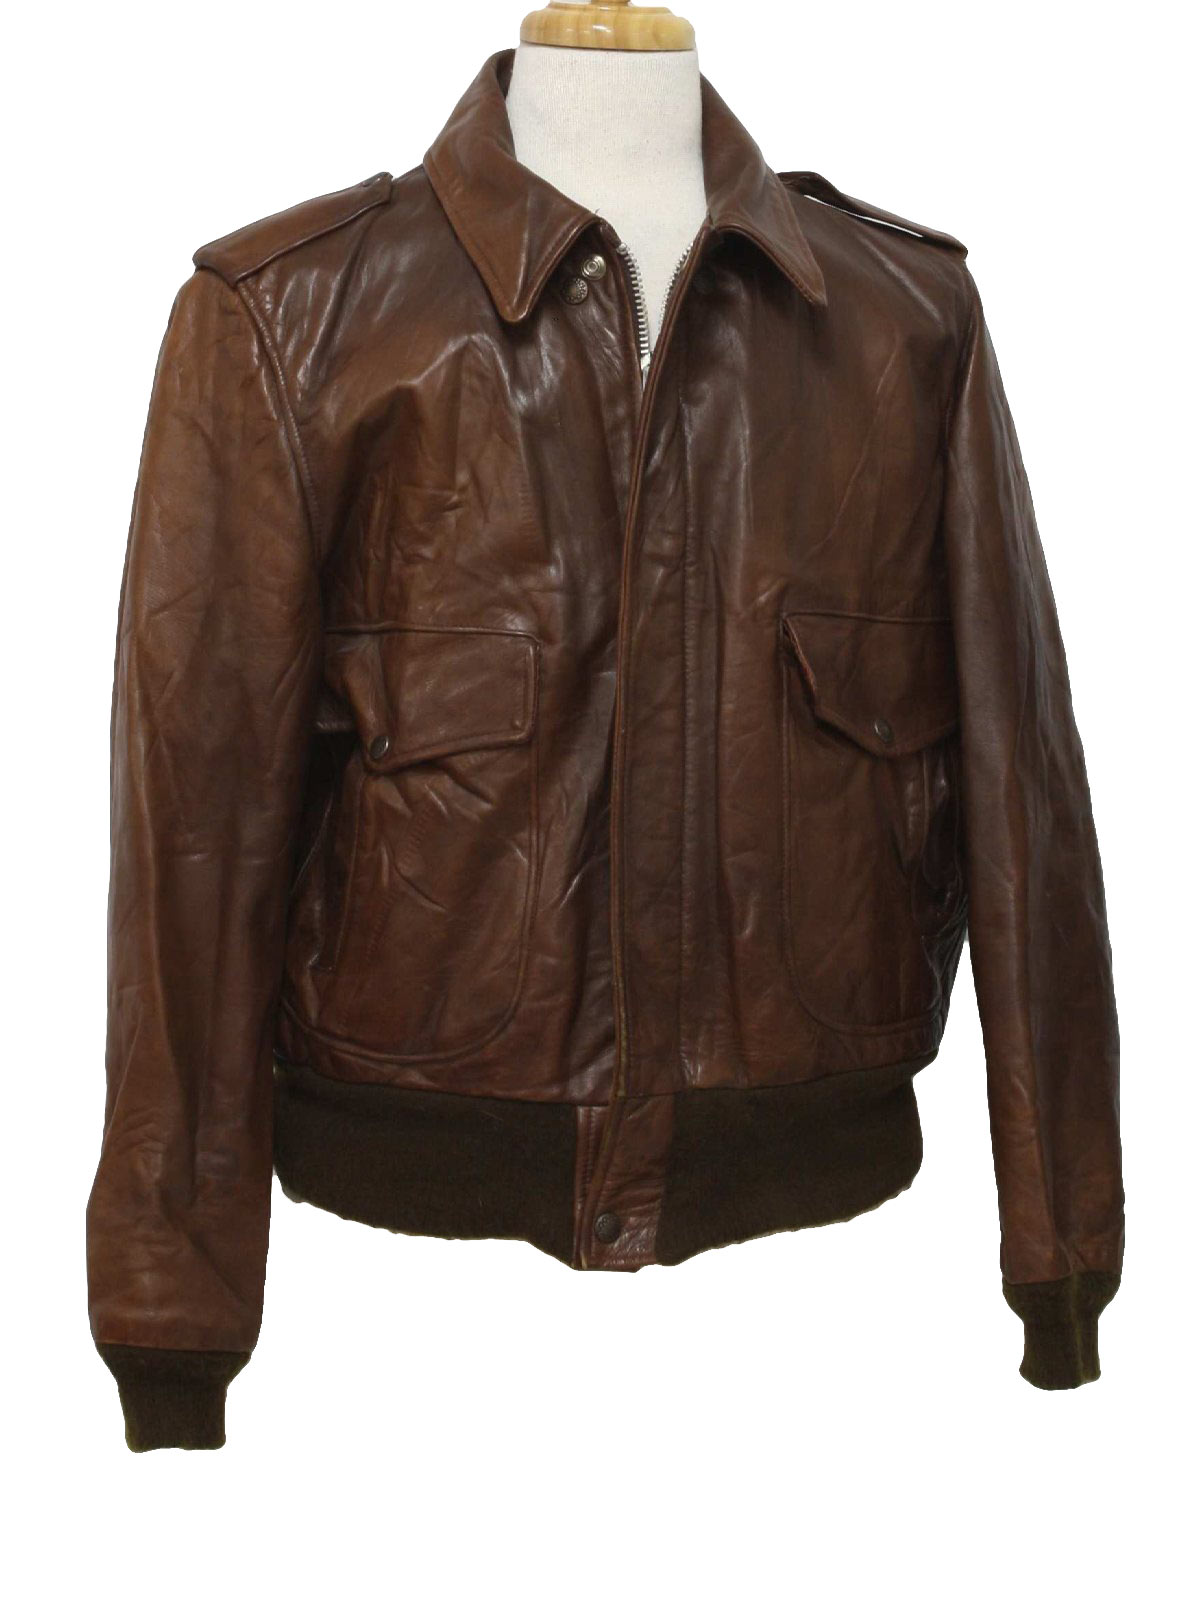 Retro 1970s Leather Jacket 70s Missing Label Mens Brown